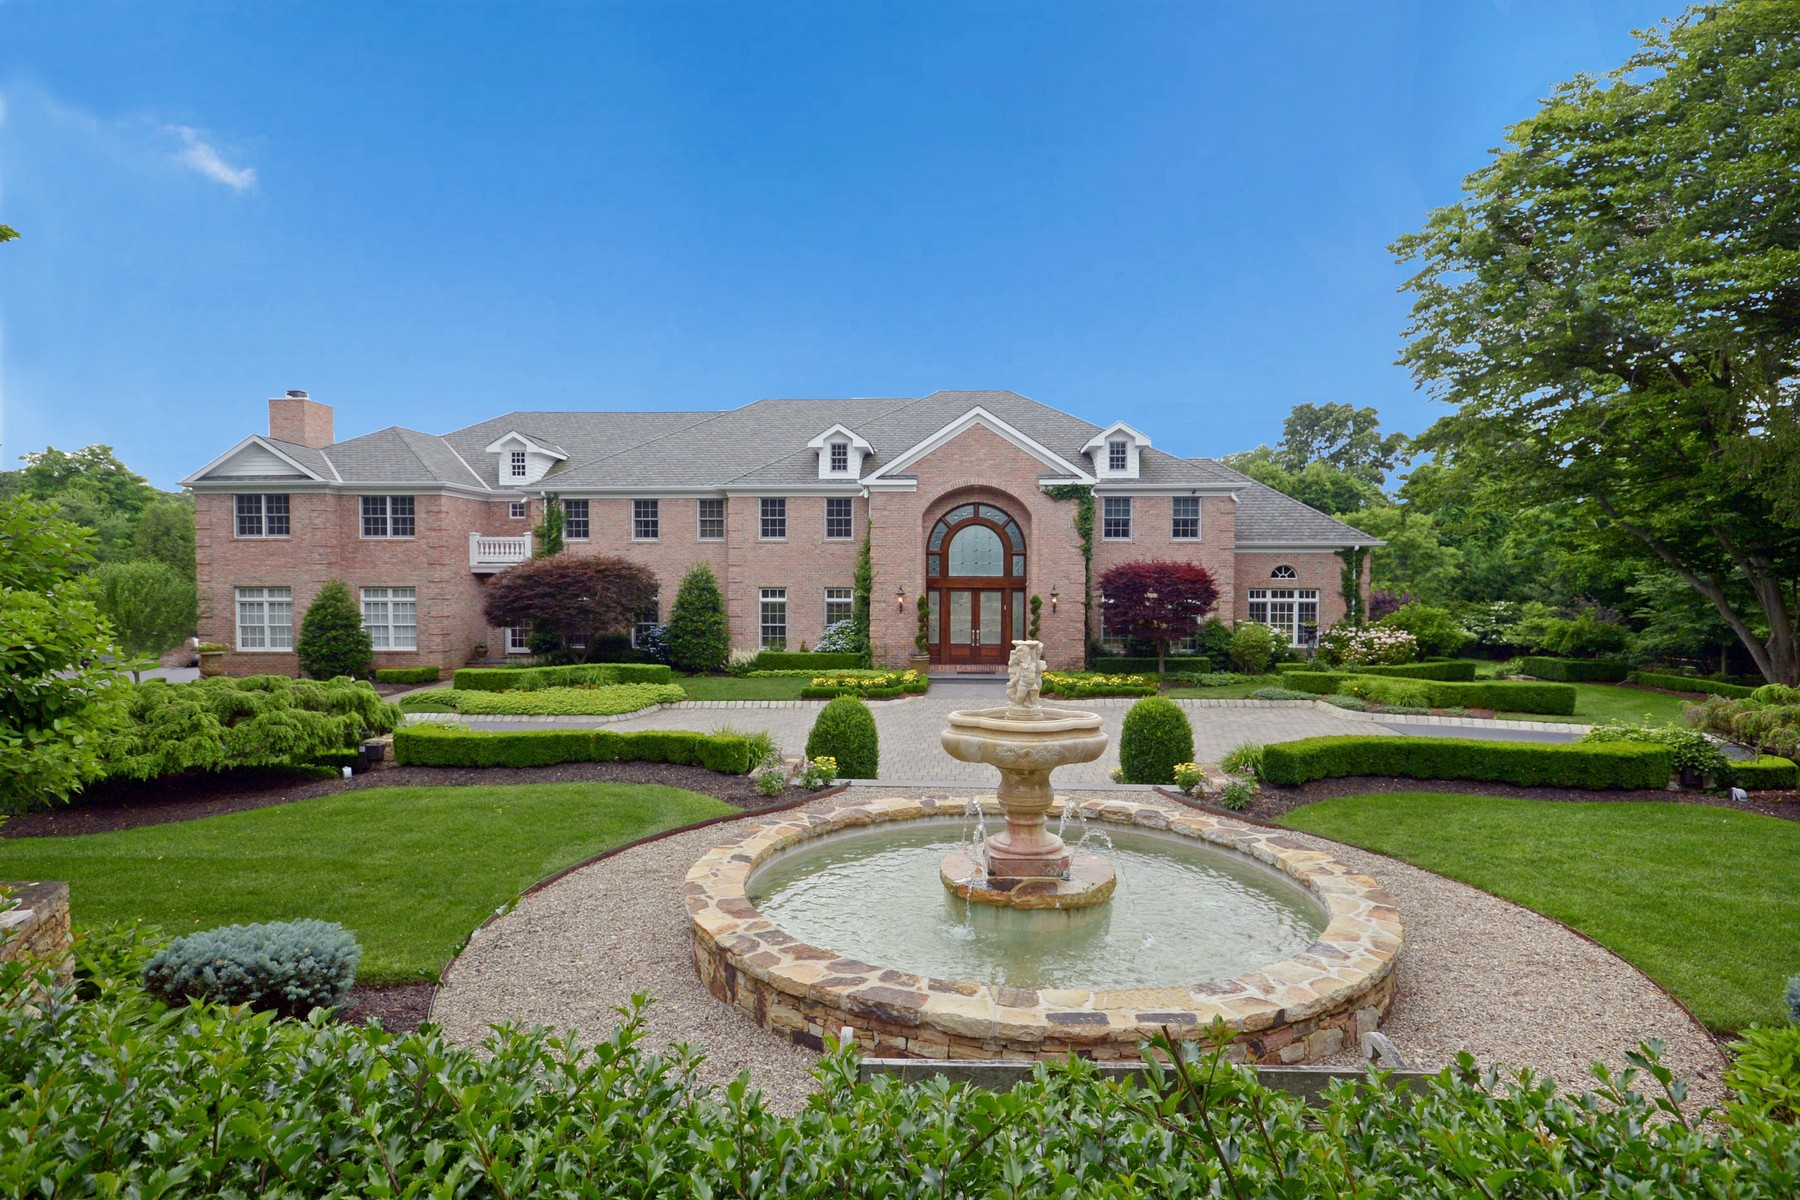 Villa per Vendita alle ore Private Estate Compound 132 Heulitt Road Colts Neck, New Jersey, 07722 Stati Uniti